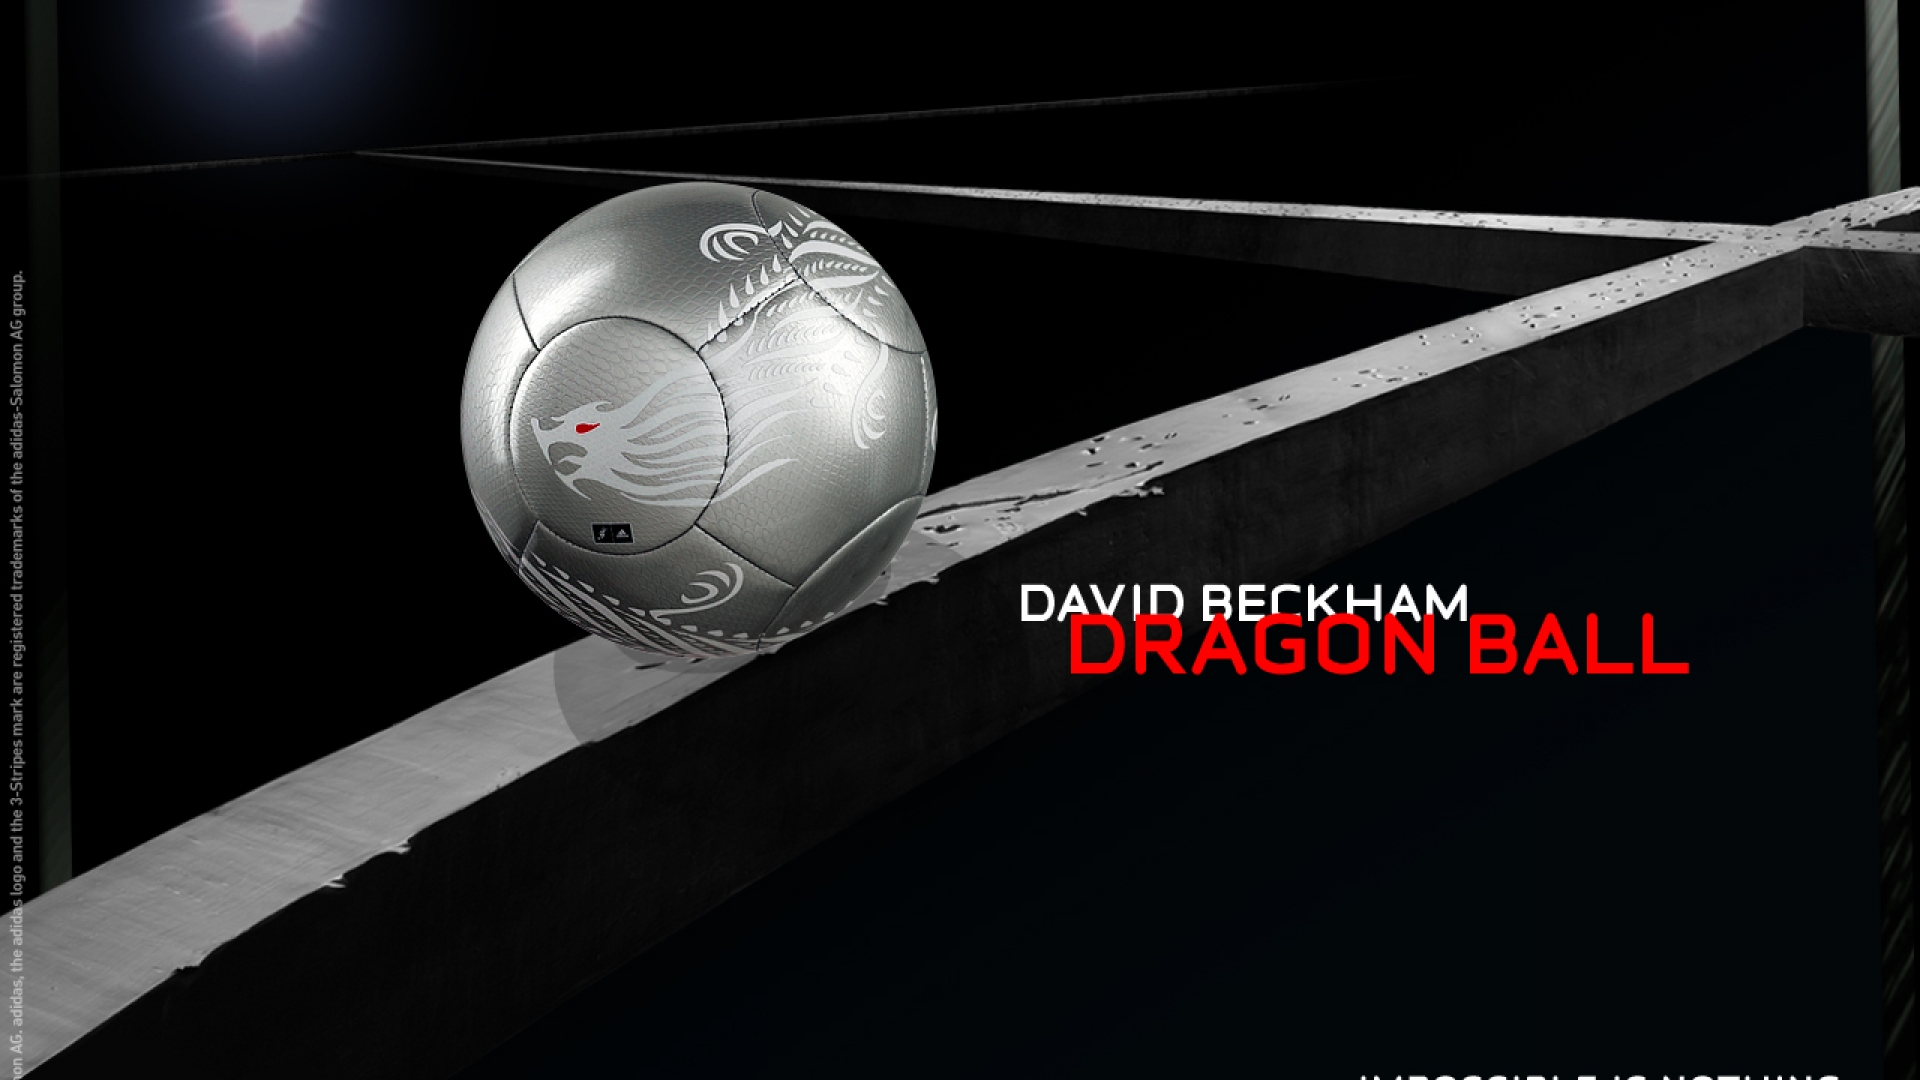 Beckham Soccer Wallpaper